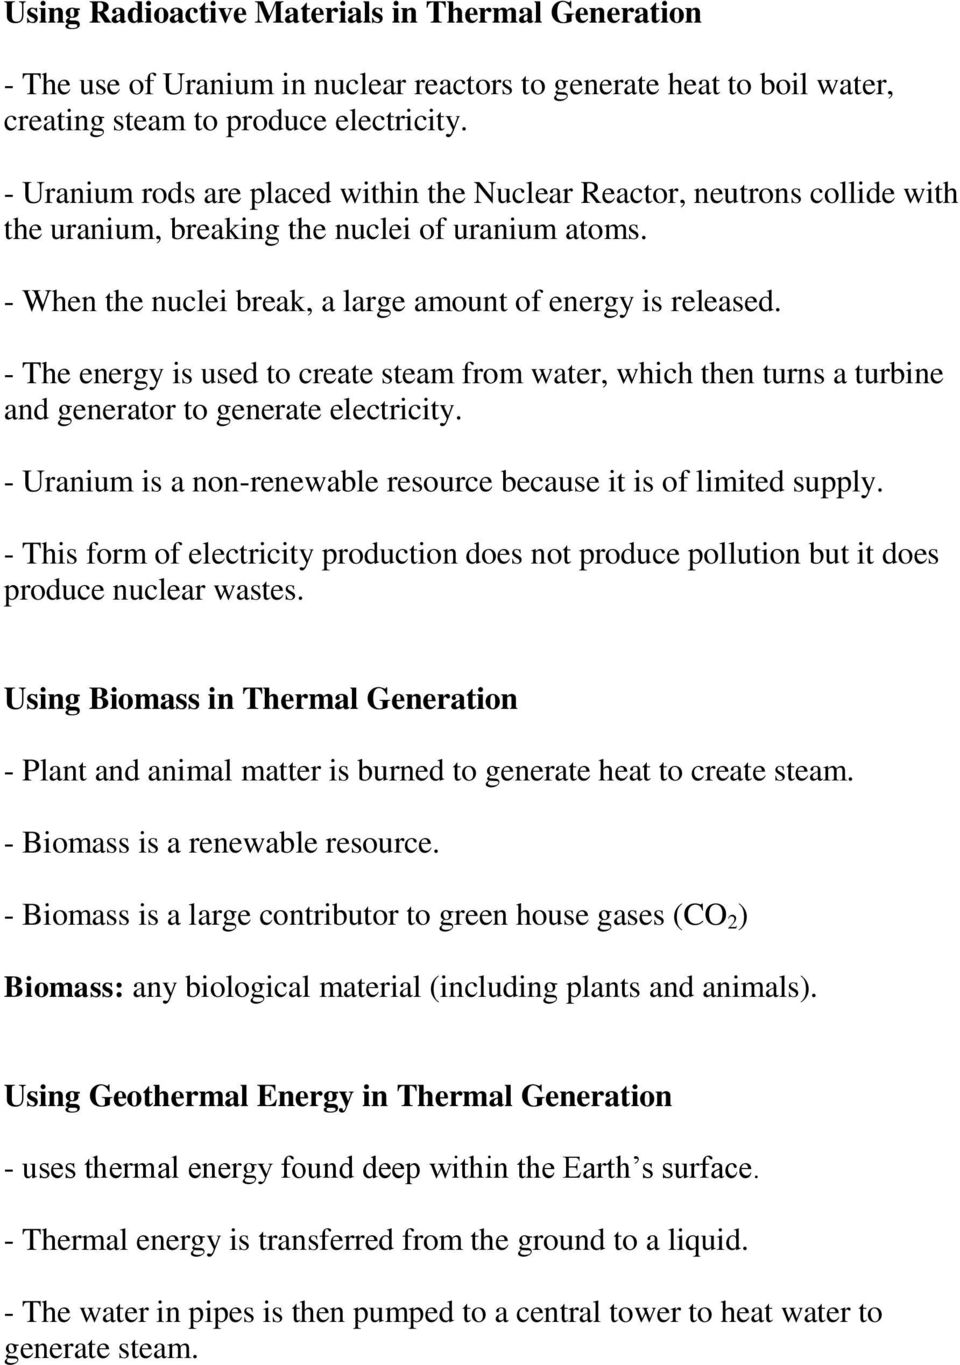 - The energy is used to create steam from water, which then turns a turbine and generator to generate electricity. - Uranium is a non-renewable resource because it is of limited supply.